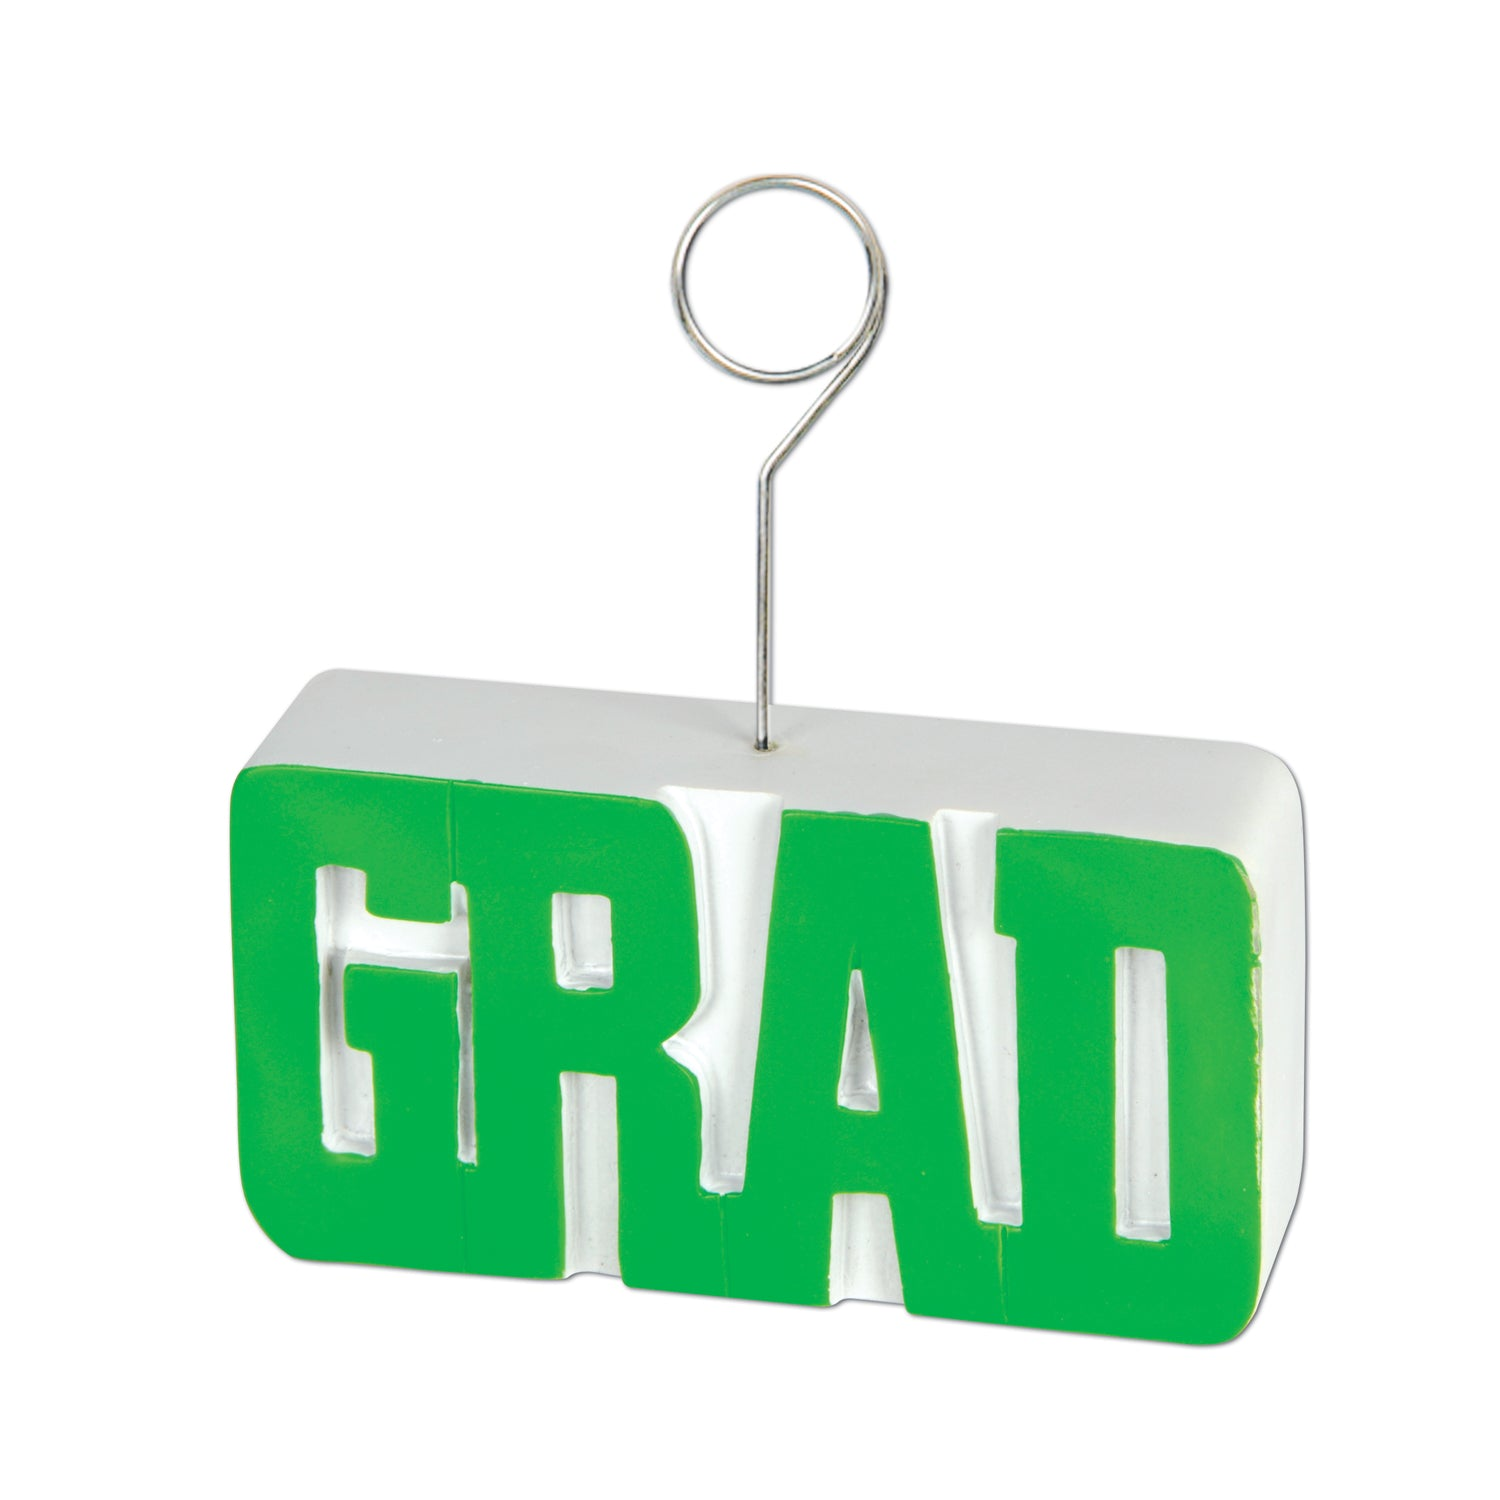 Grad Photo/Balloon Holder, green by Beistle - Graduation Theme Decorations